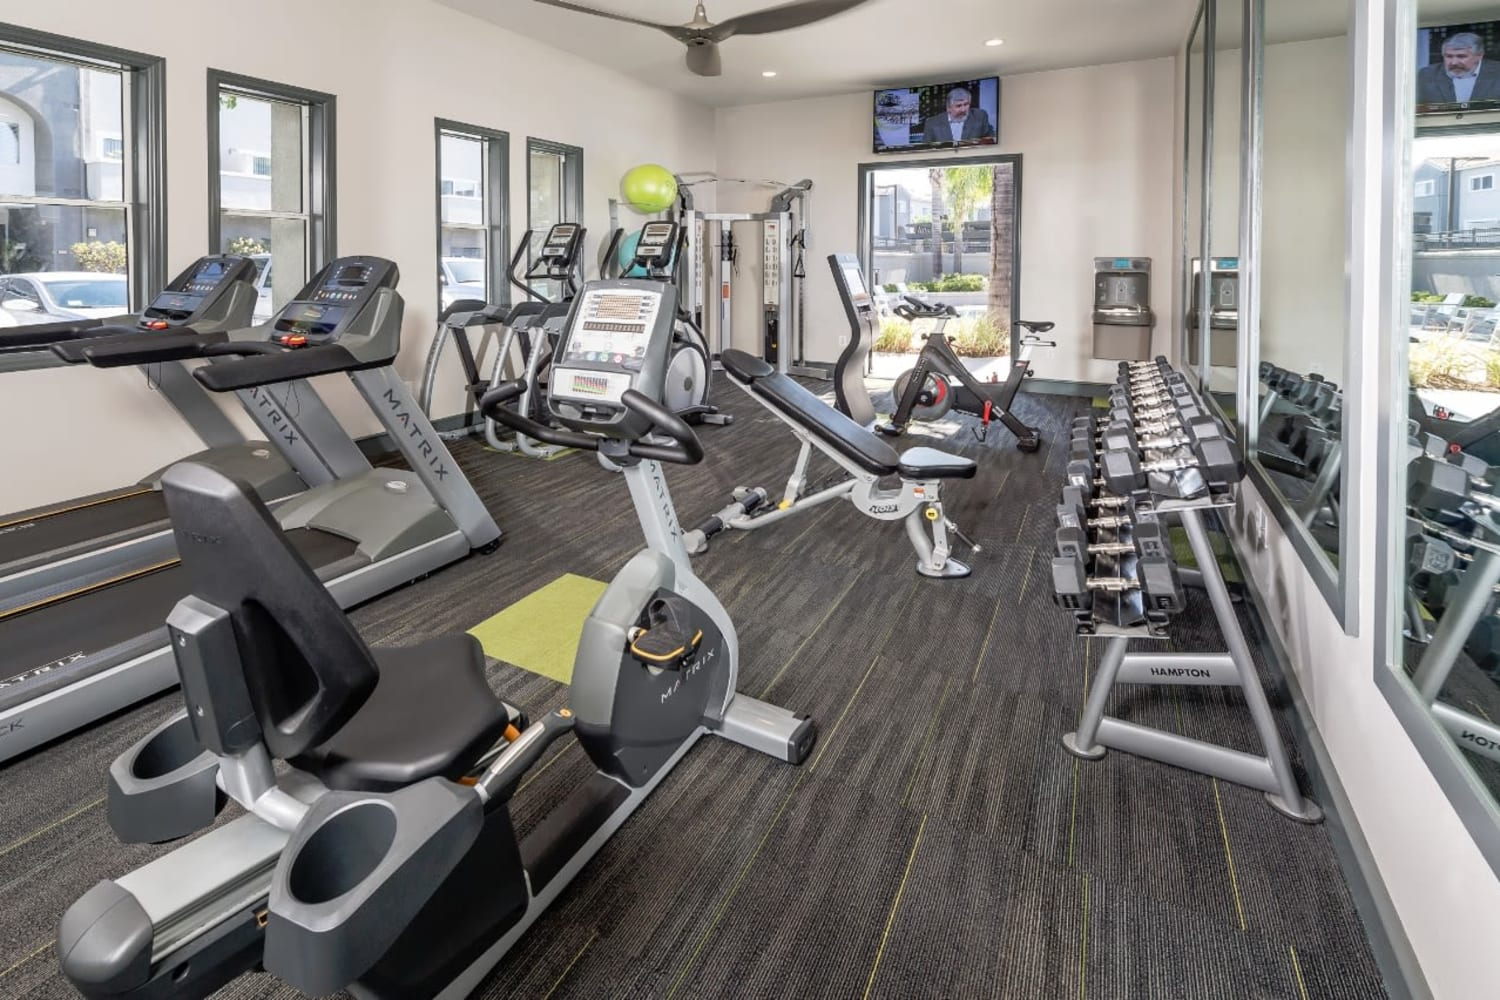 Madrid Apartments in Mission Viejo, California, offer a fully equipped fitness center